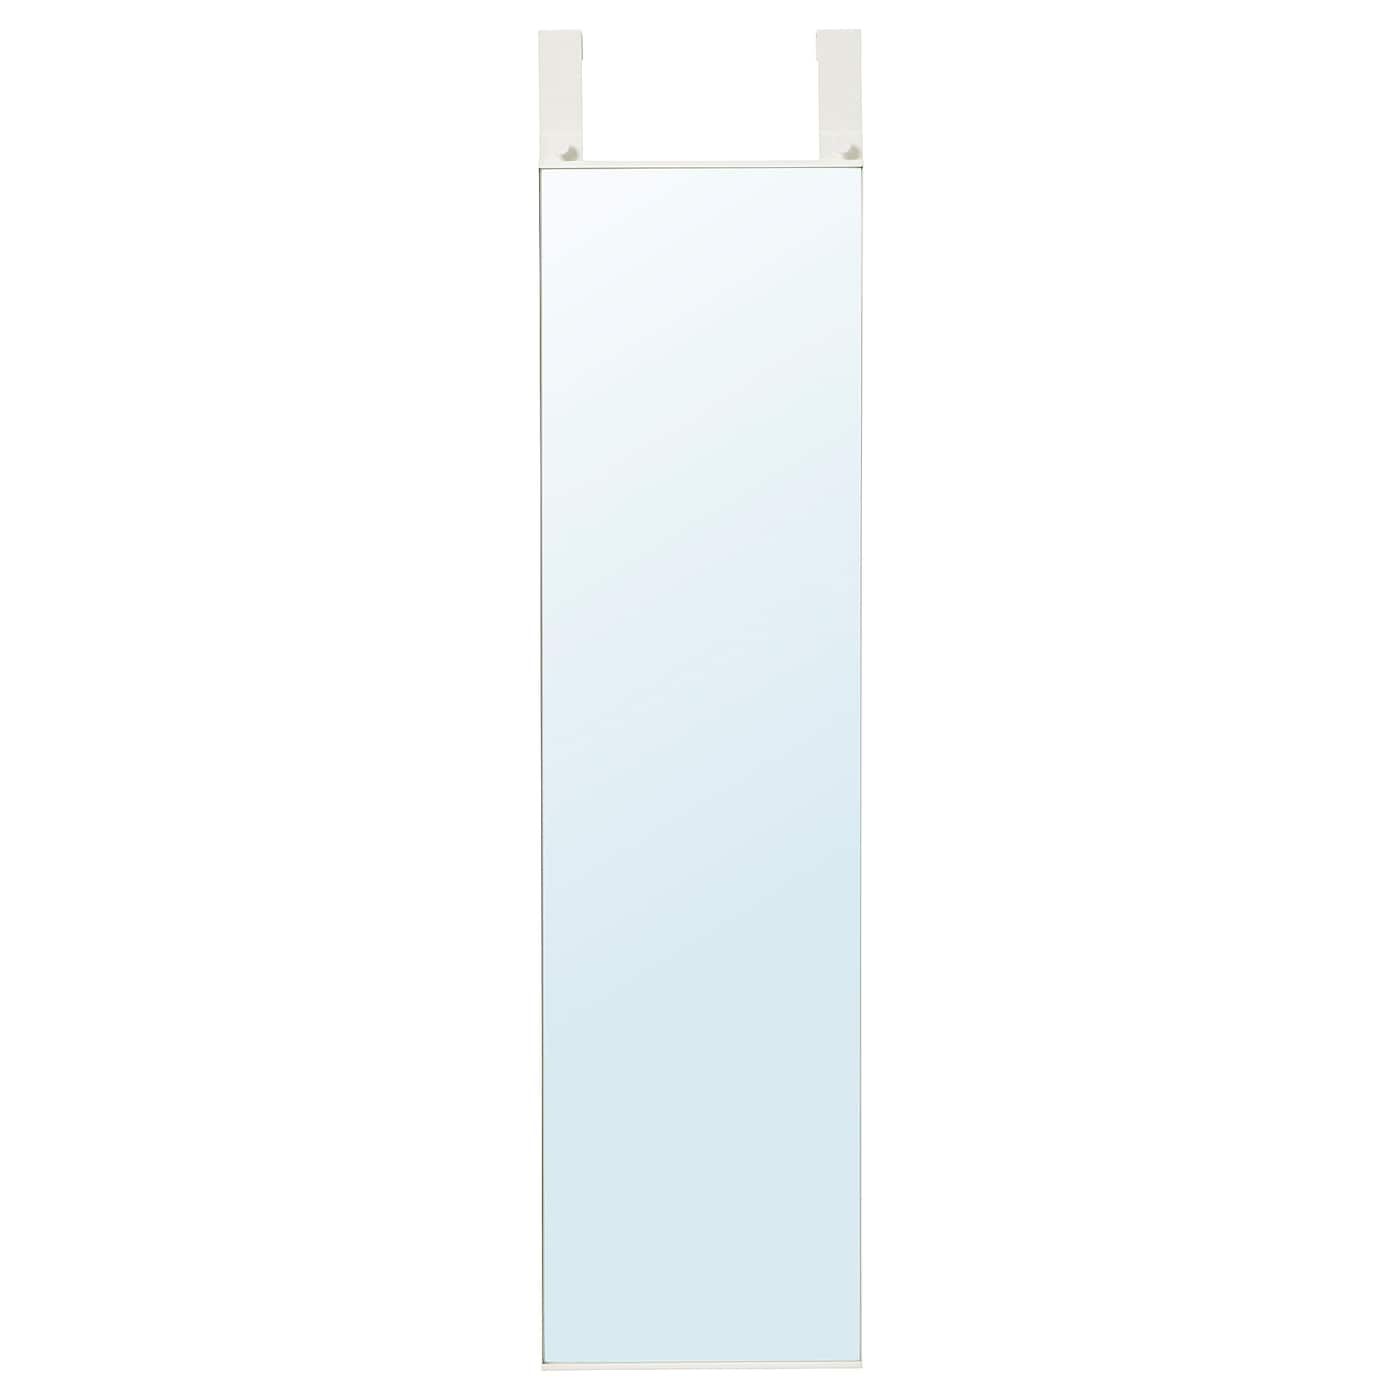 IKEA GARNES over-the-door mirror Out of wall space? Don't worry, this mirror hangs on your door.